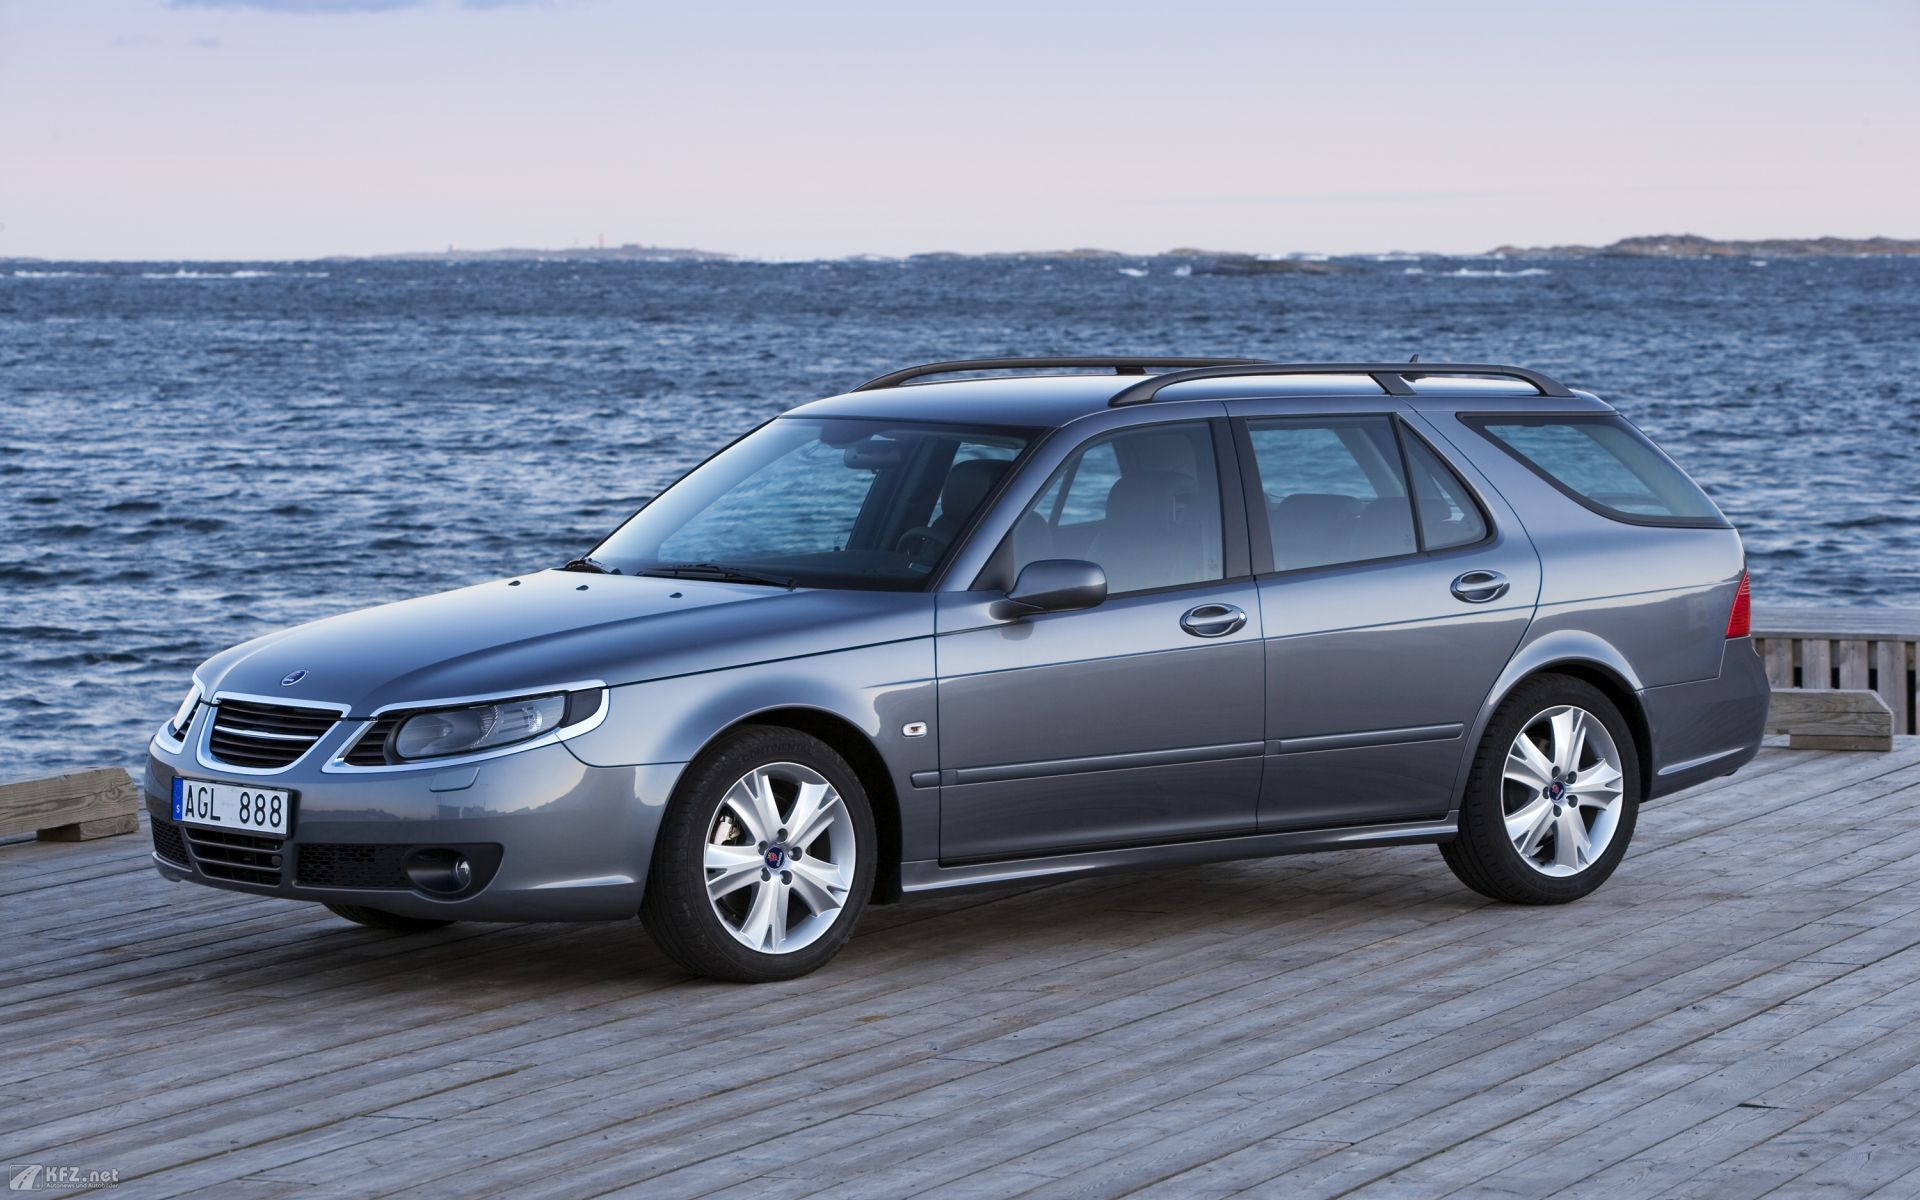 Dodge Latest Models >> 2016 Saab 9-5 – pictures, information and specs - Auto ...